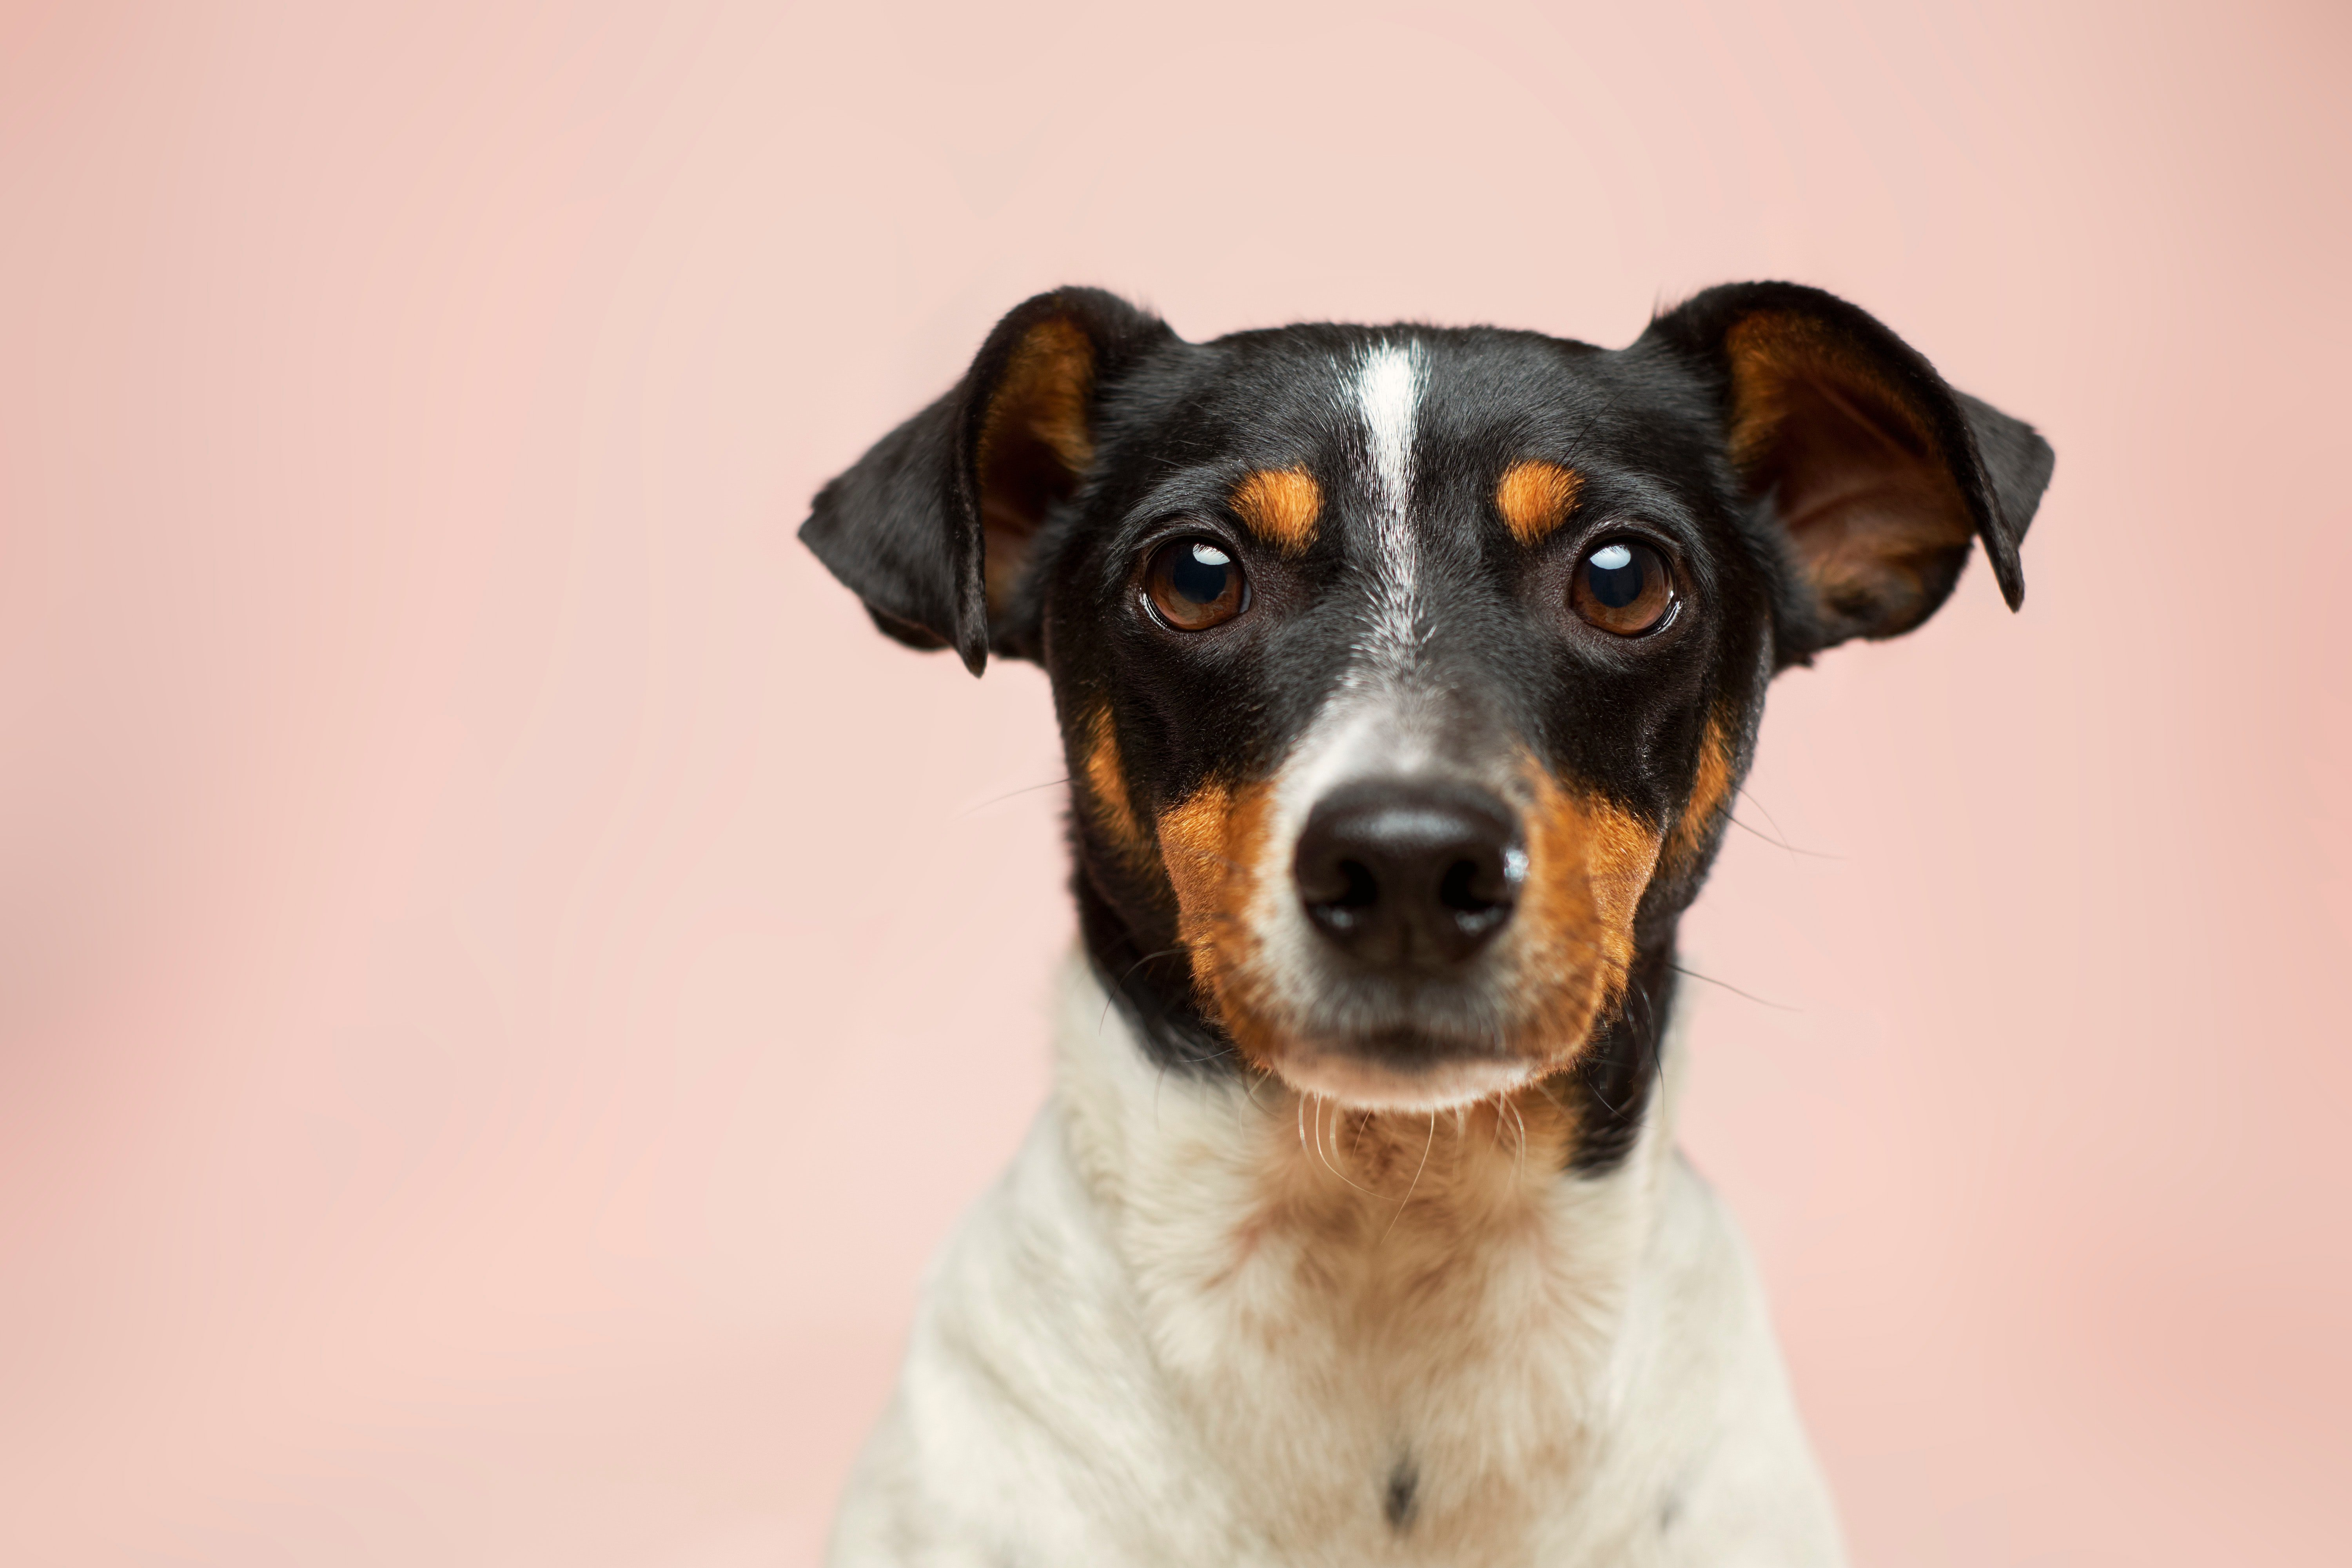 A terrier-type dog looking at the camera with sad eyes.